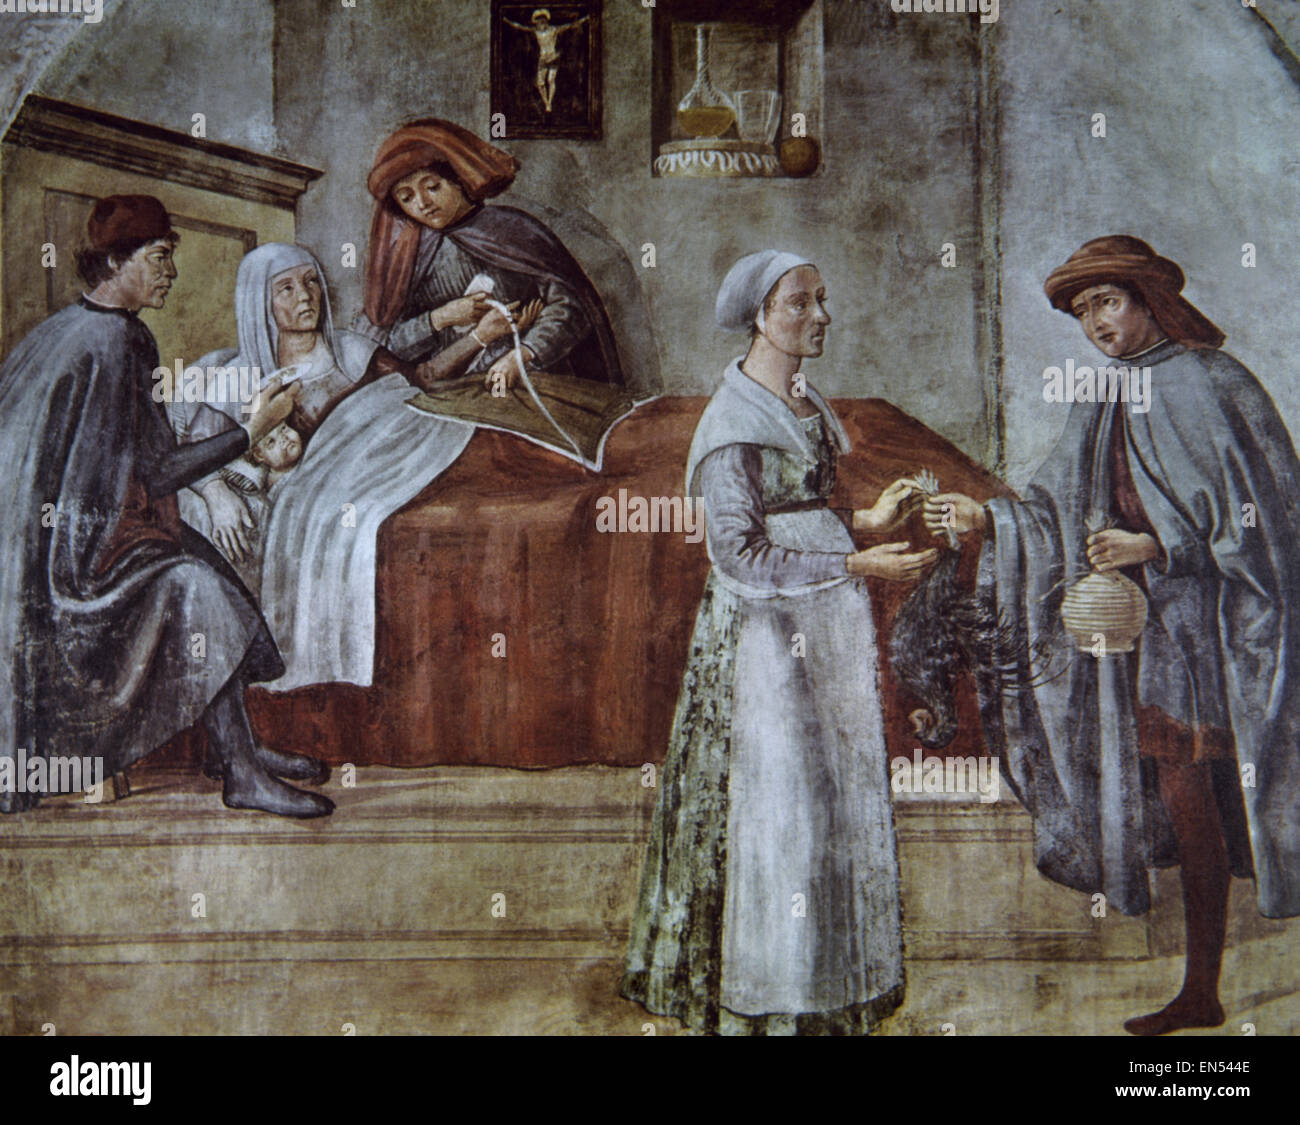 History of medicine. Parturient. Painting. 15th century. Florence. Italy. Stock Photo